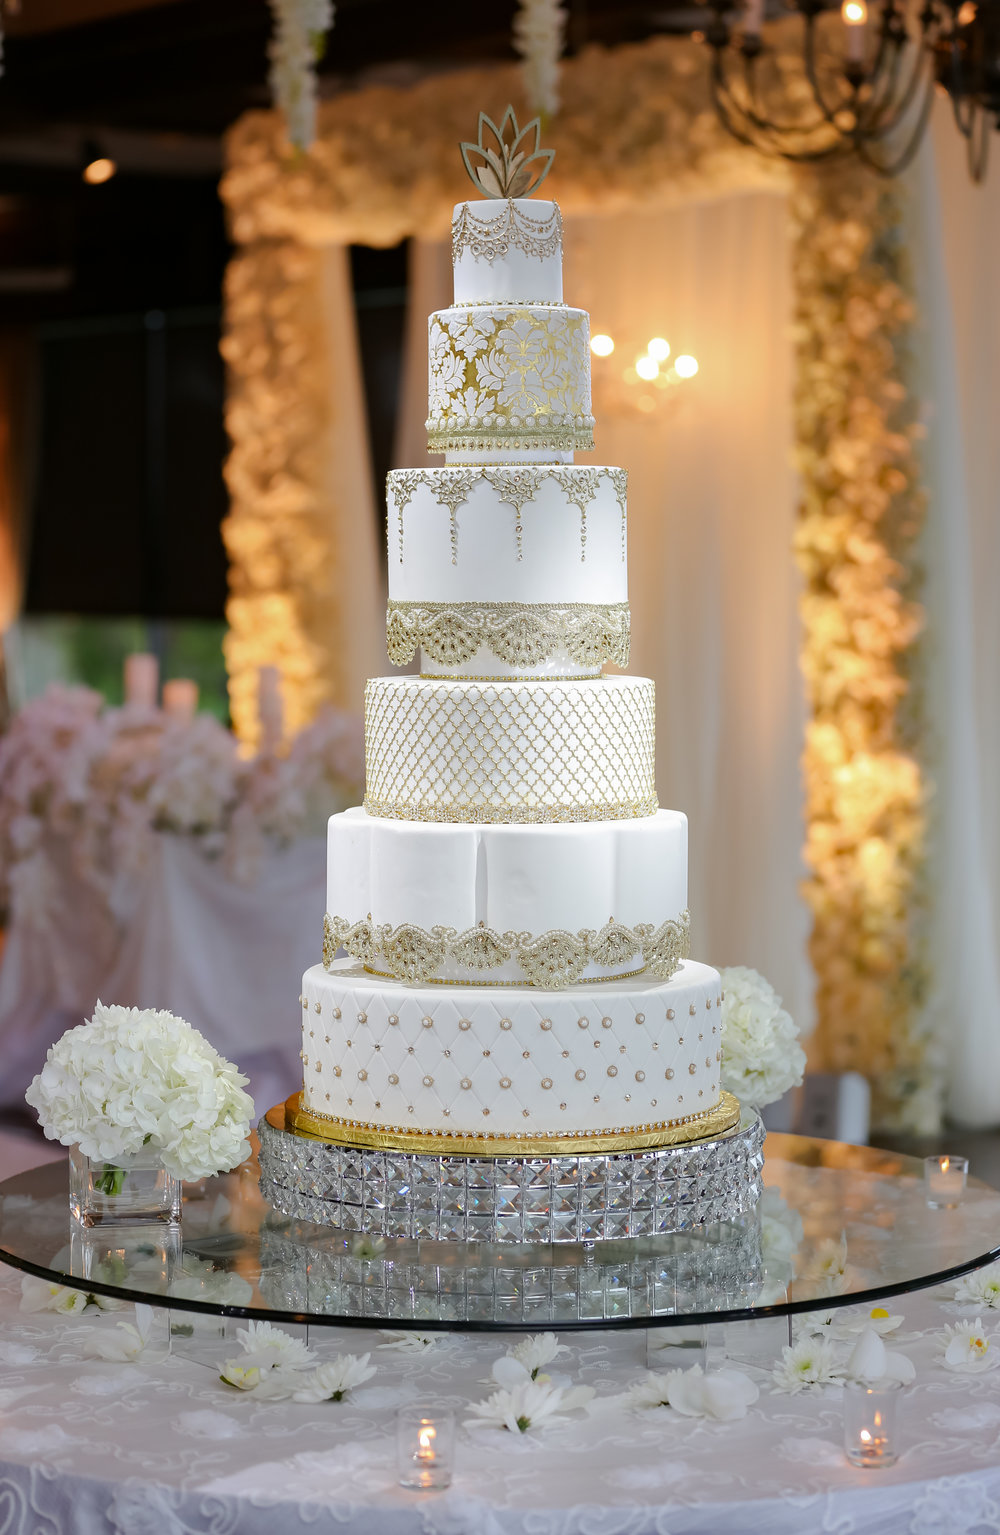 And can we just talk about this cake?! The gold accents and crystal details commanded attention under the pinspot.